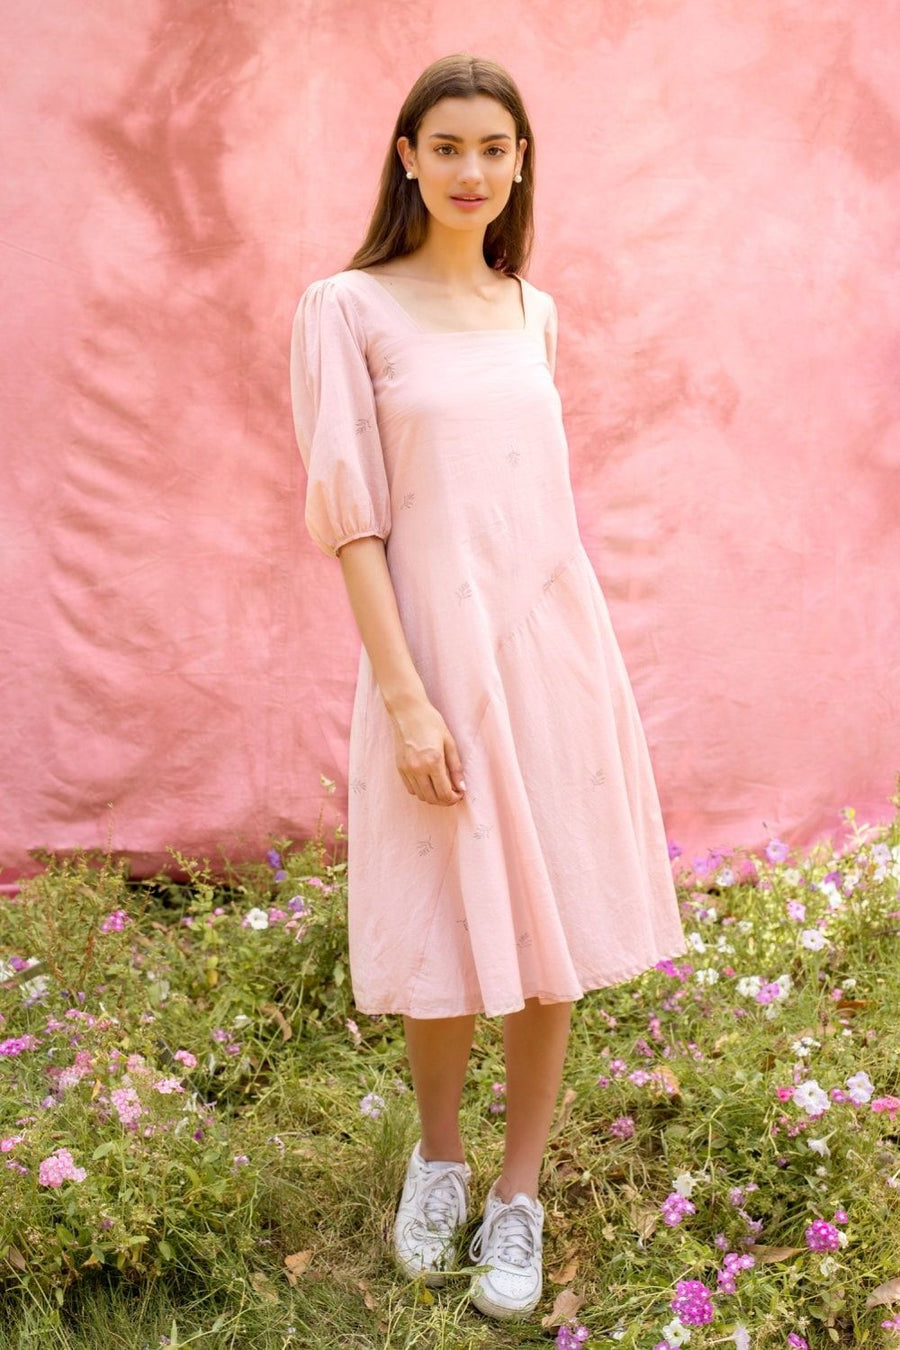 Oh Darling Pink Dress - Ethical made fashion - onlyethikal